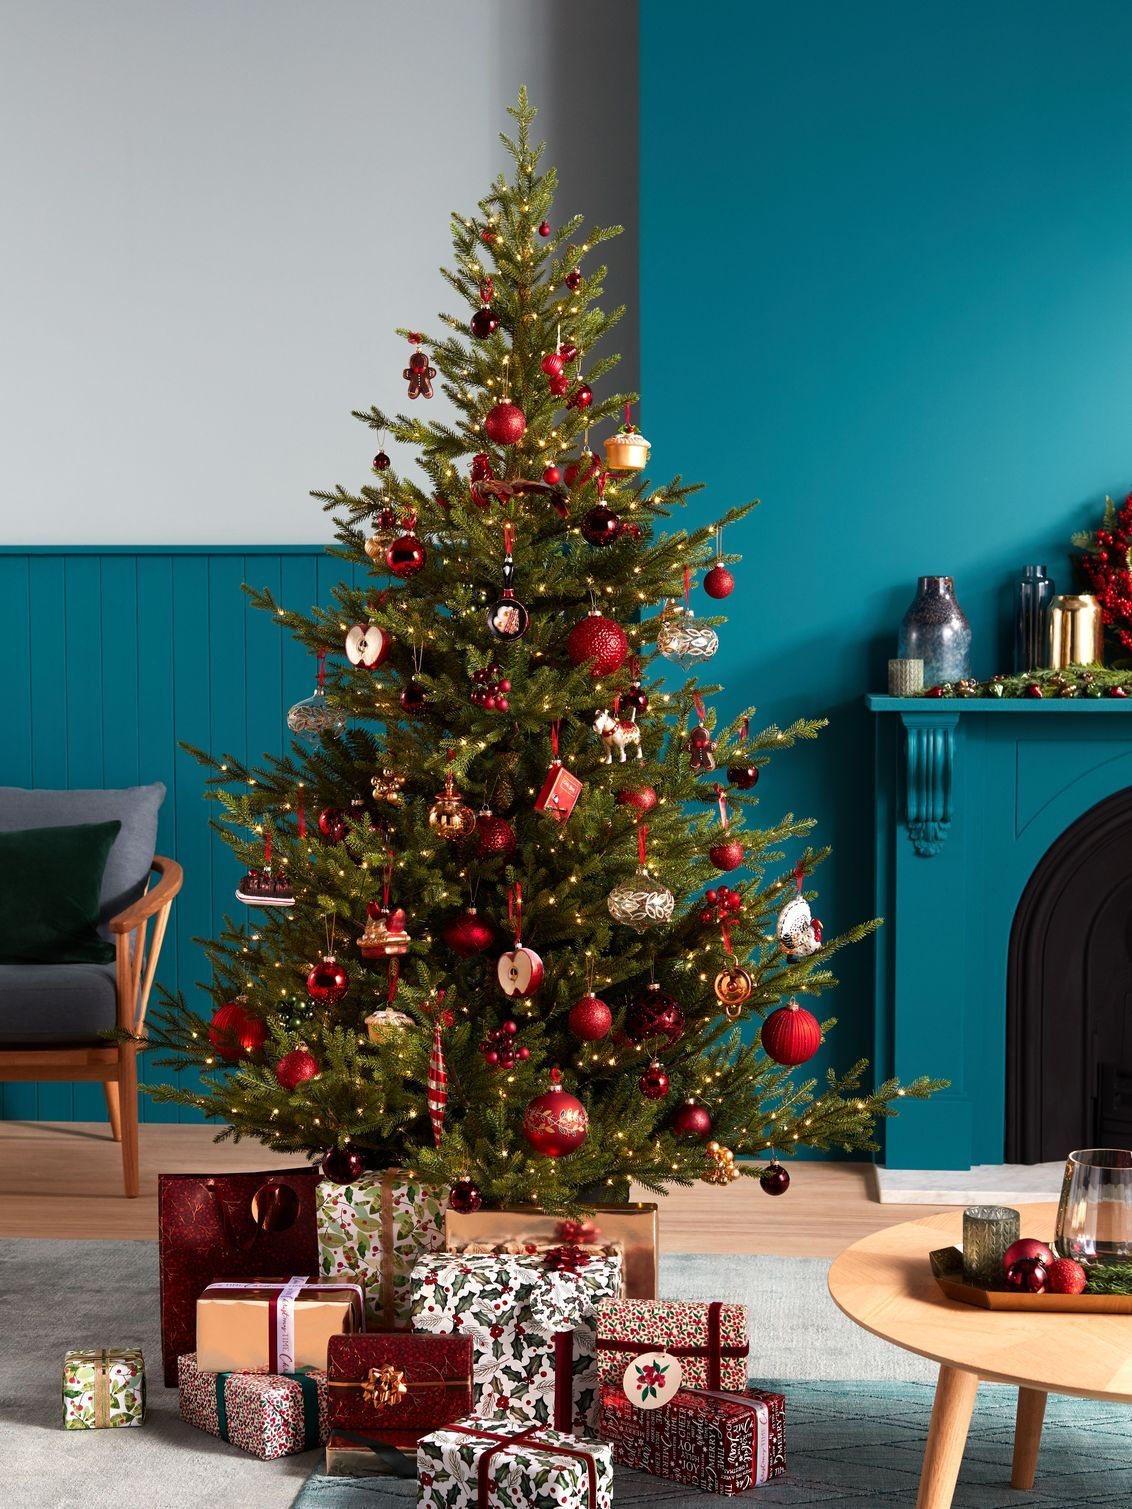 John Lewis reveal 7 Christmas decorating trends for 2019